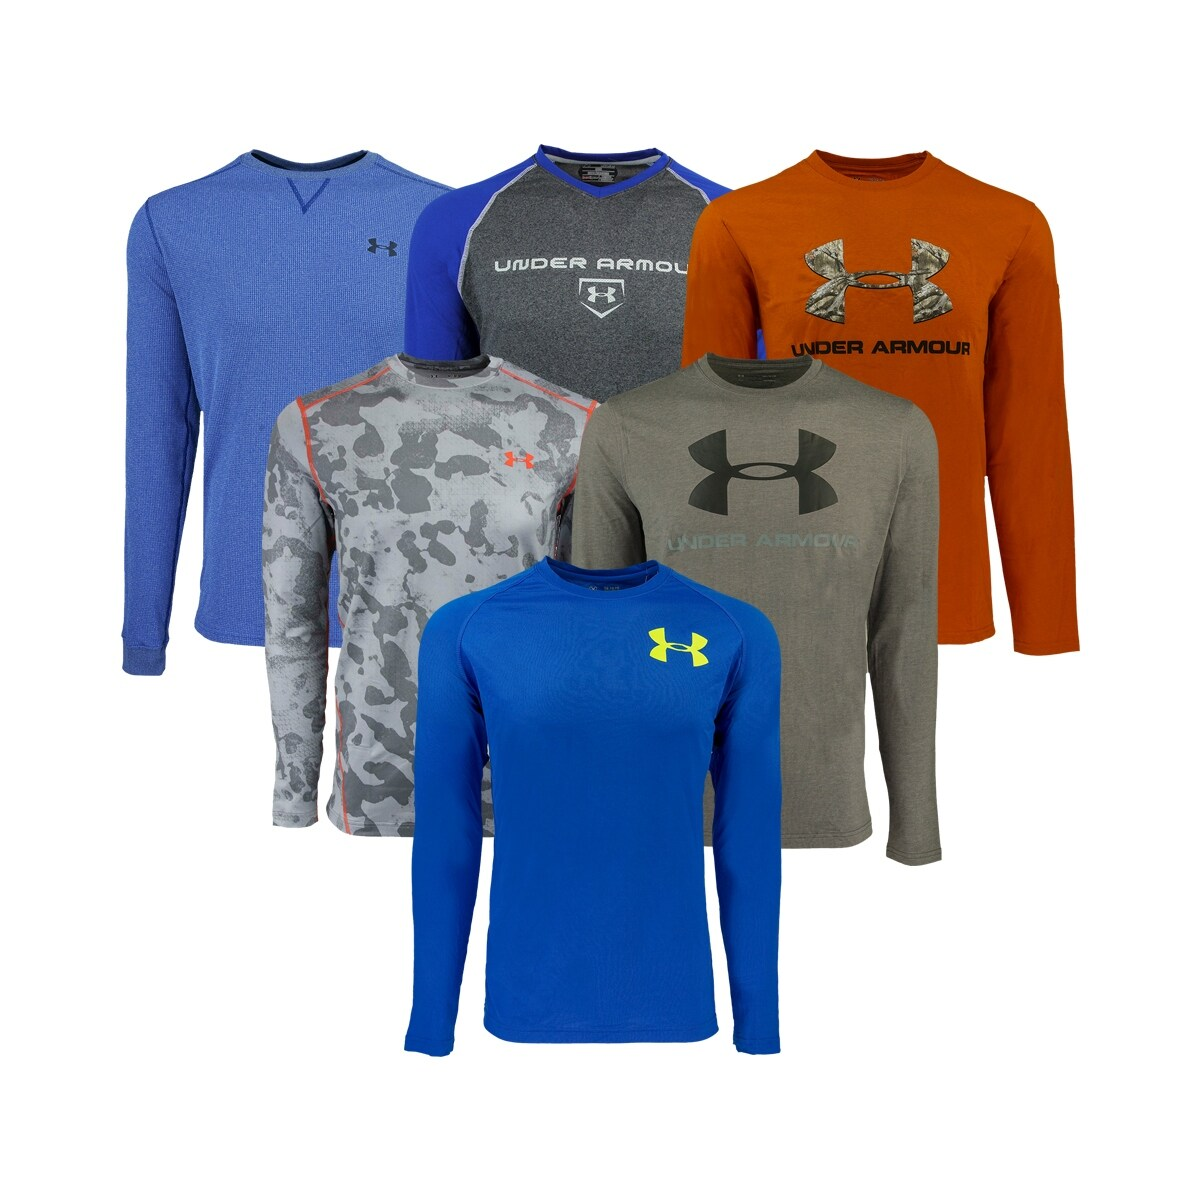 a56944f4 Under Armour Long Sleeve Compression Shirt Youth – EDGE Engineering ...